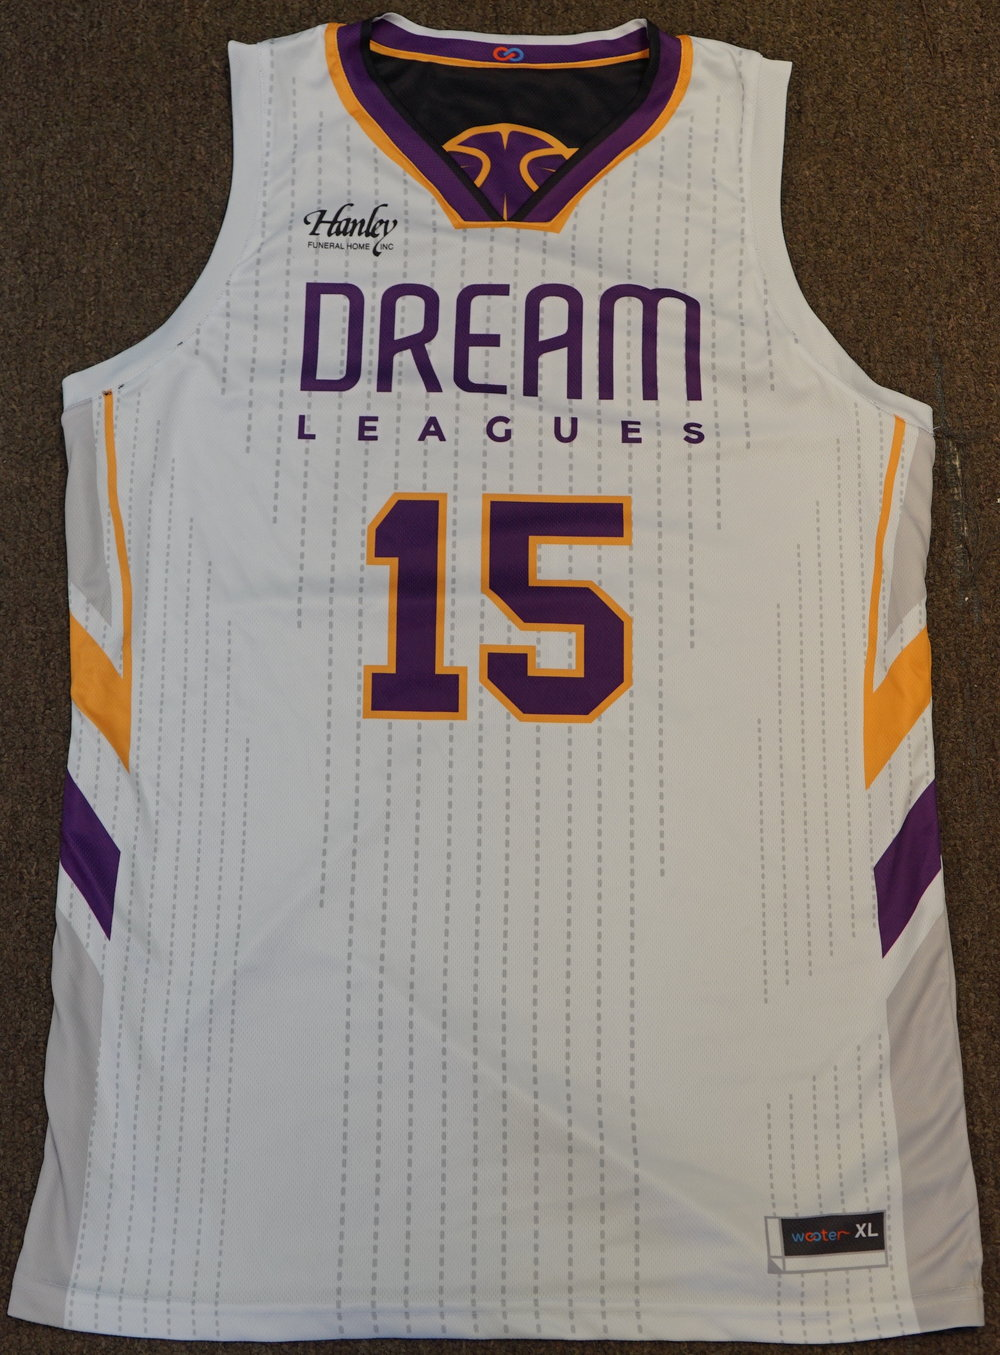 DREAM LEAGUES White Purple Black Orange and Yellow Baseball Uniforms, Jerseys